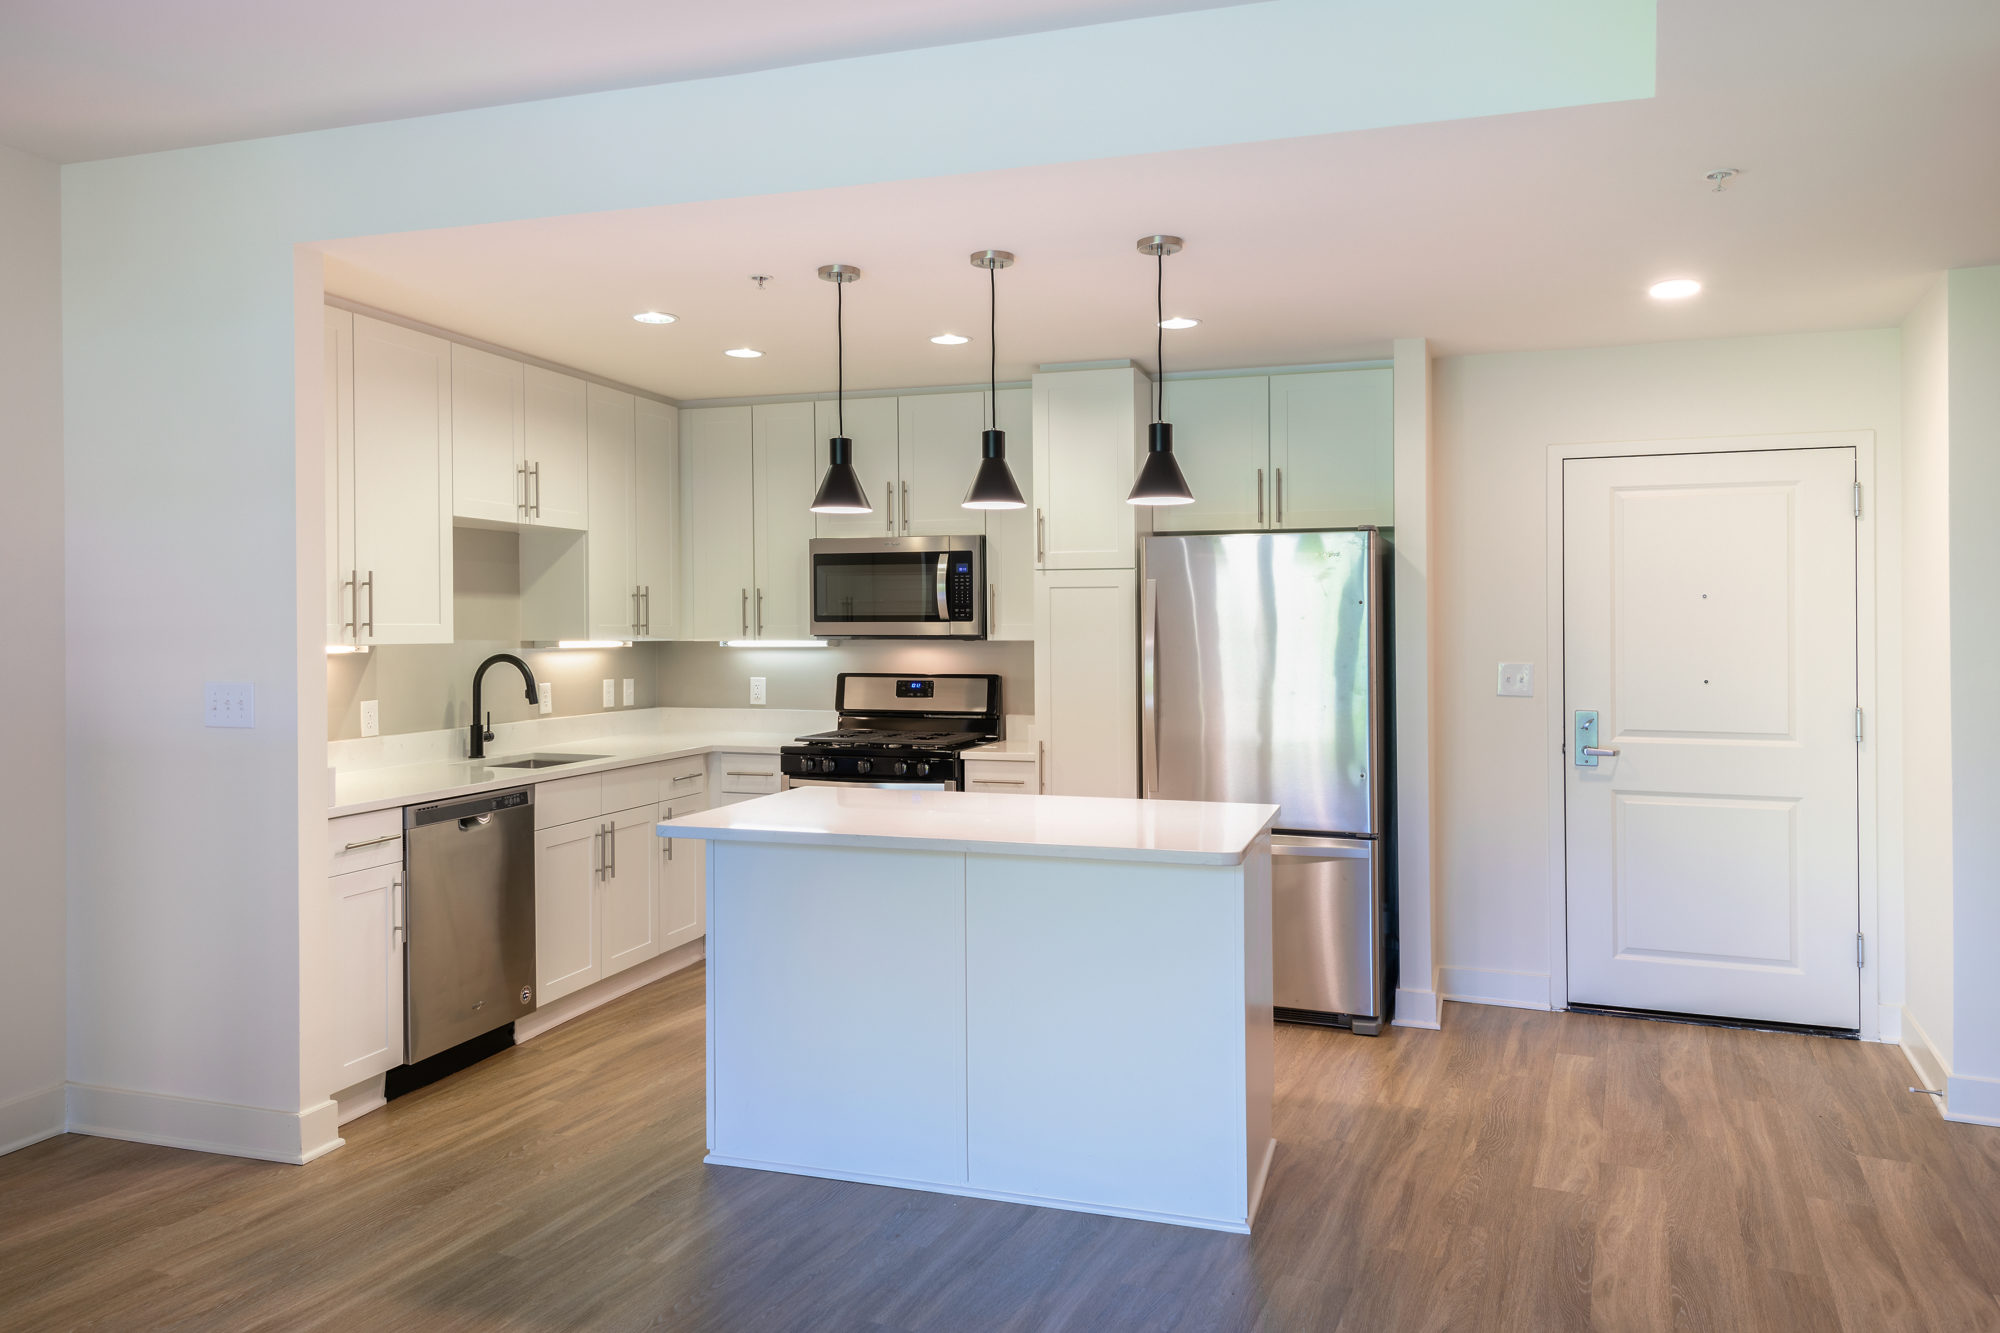 white kitchen shot with island, white cabinets and countertops, stainless steel appliances, black pendant lighting and single basin sink